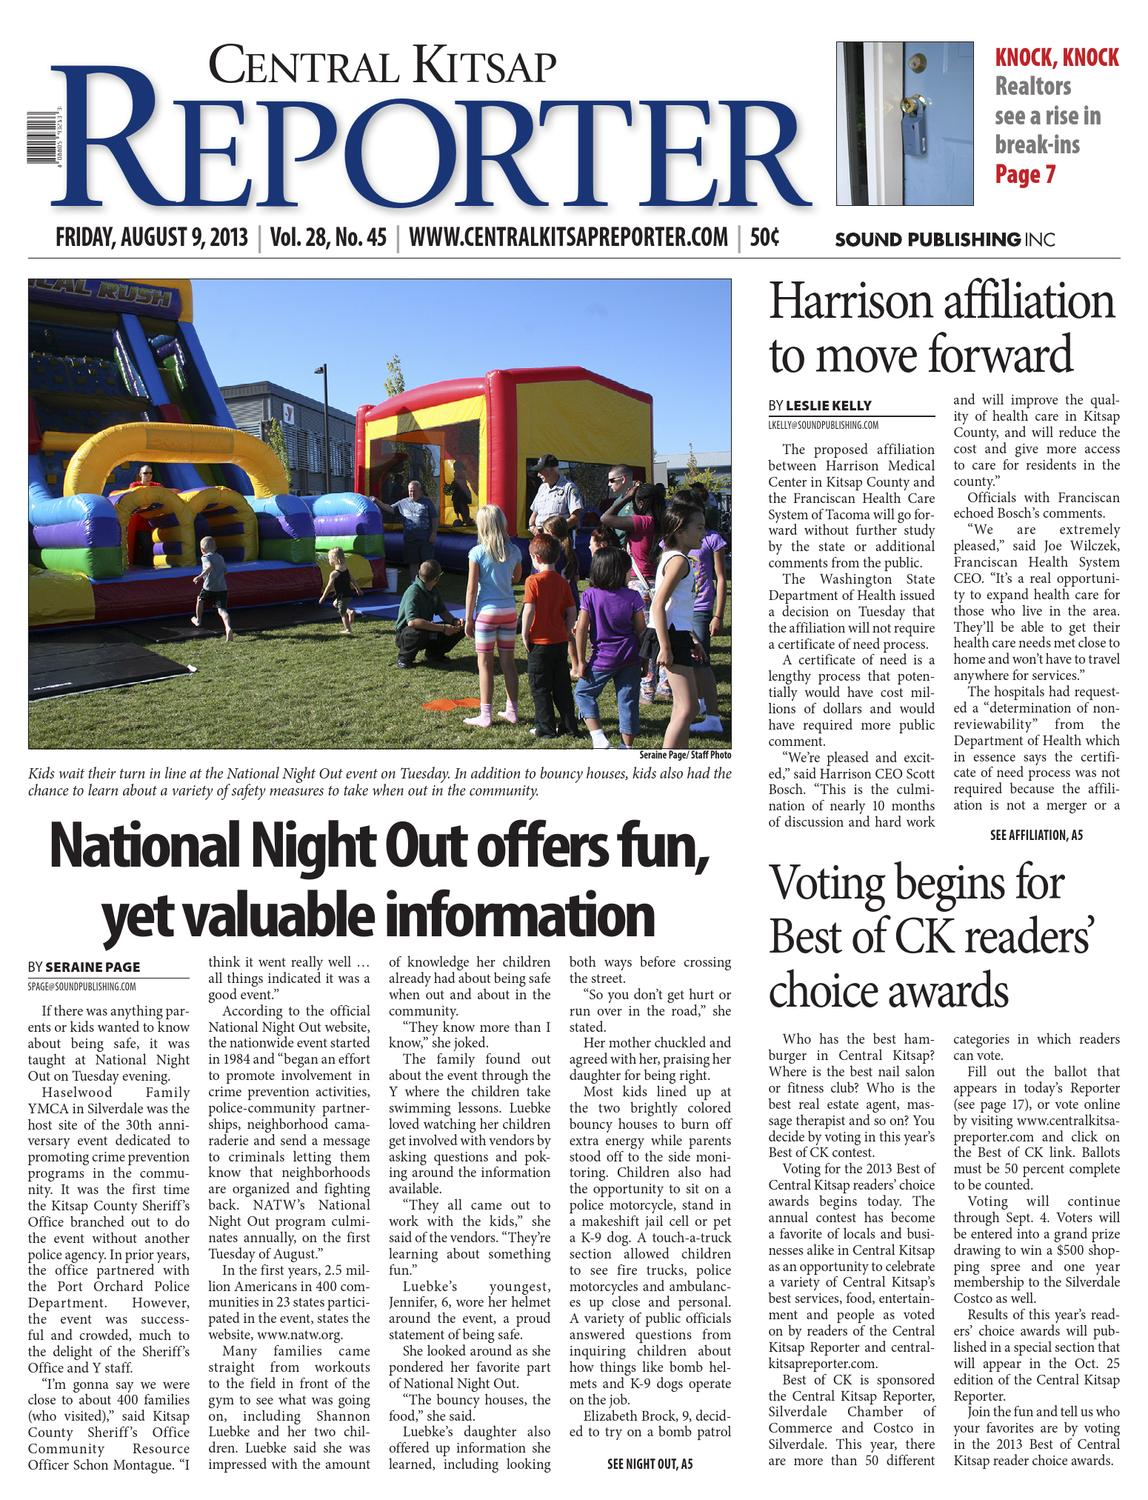 Central kitsap reporter august 09 2013 by sound publishing issuu fandeluxe Image collections